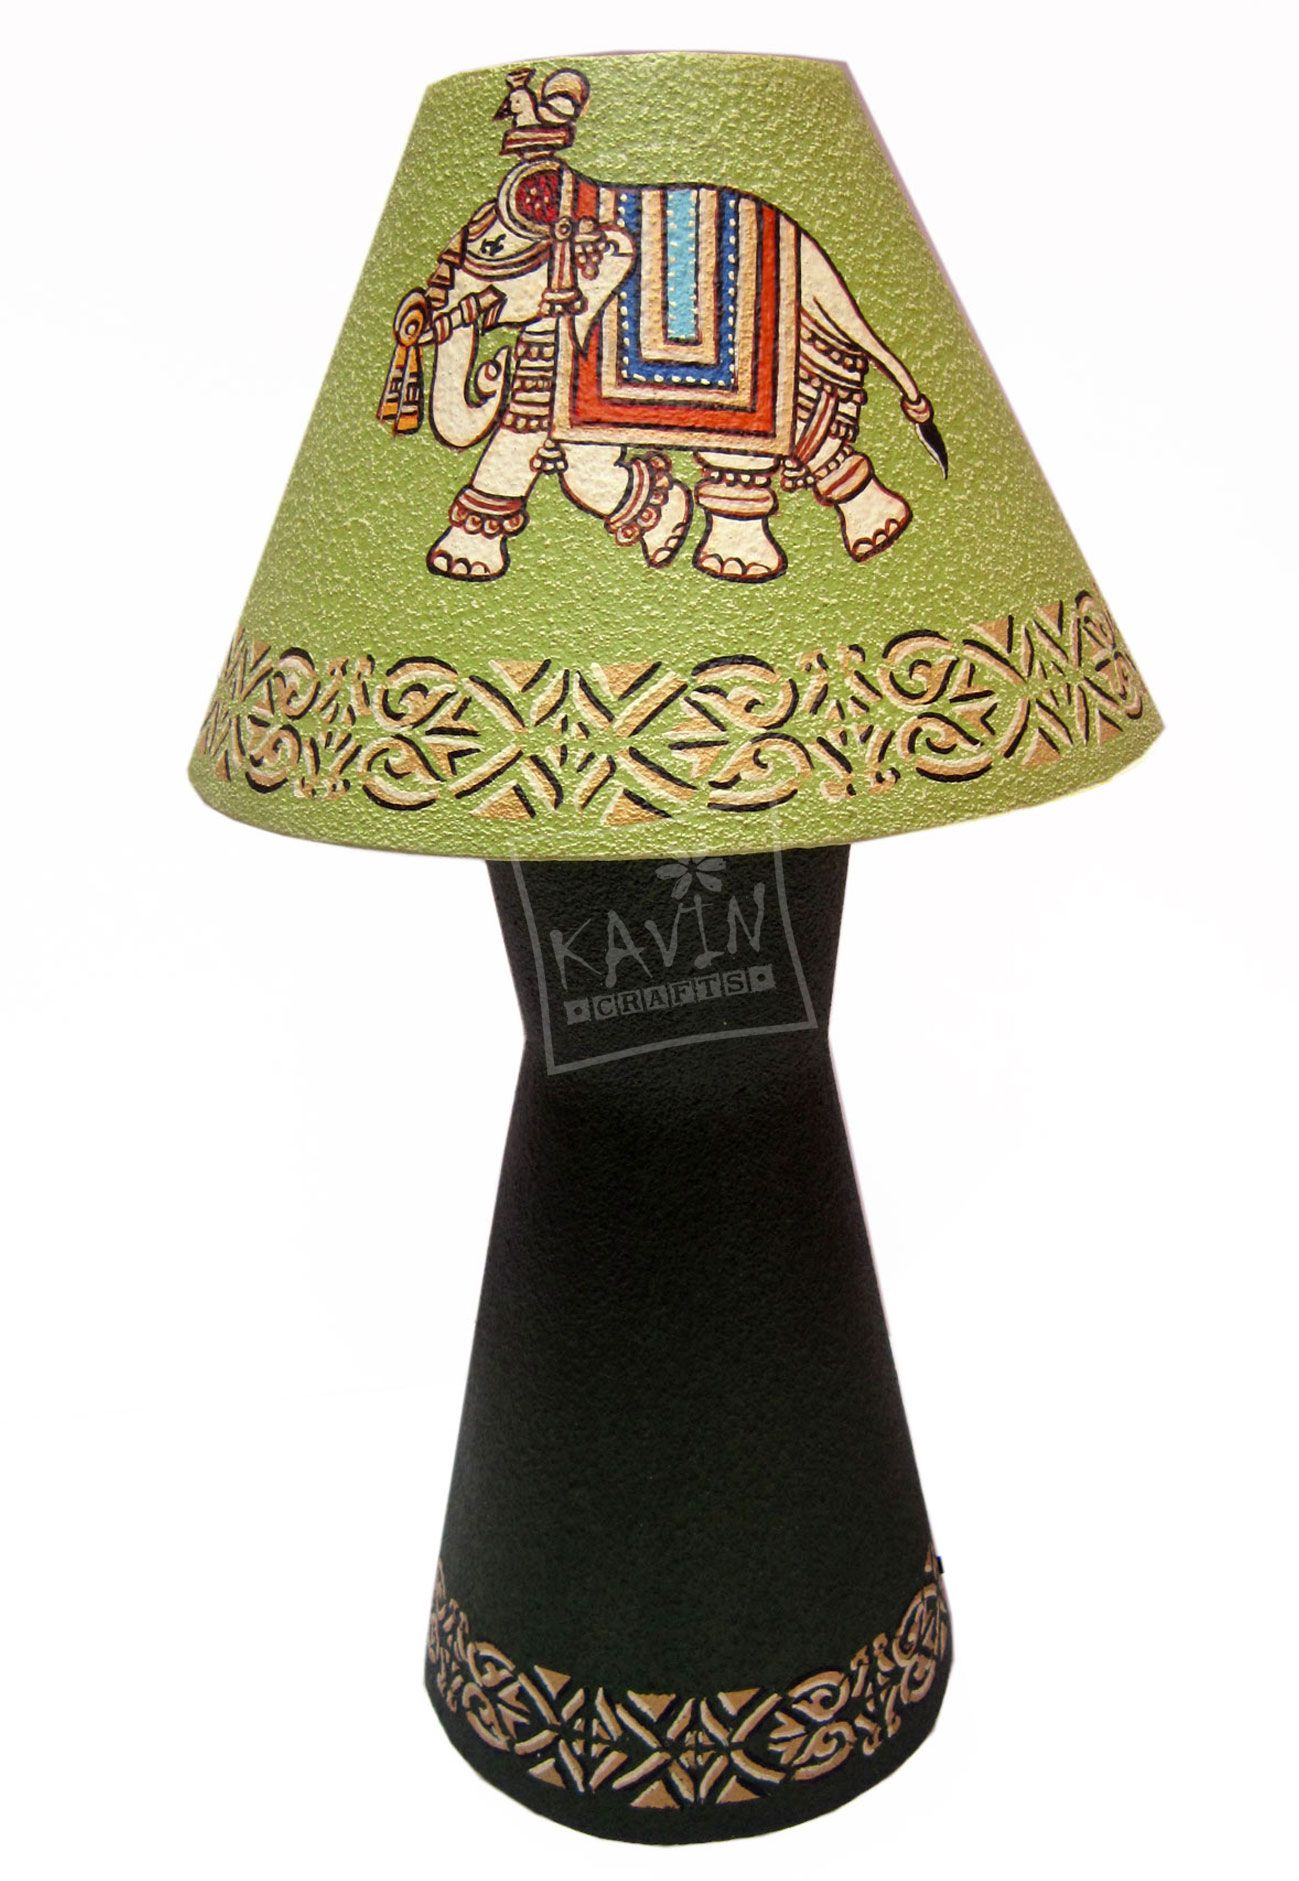 Decorative elephant lamp shade with 38 discount buy from decorative elephant lamp shade with 38 discount buy from craftshopsindia mozeypictures Gallery